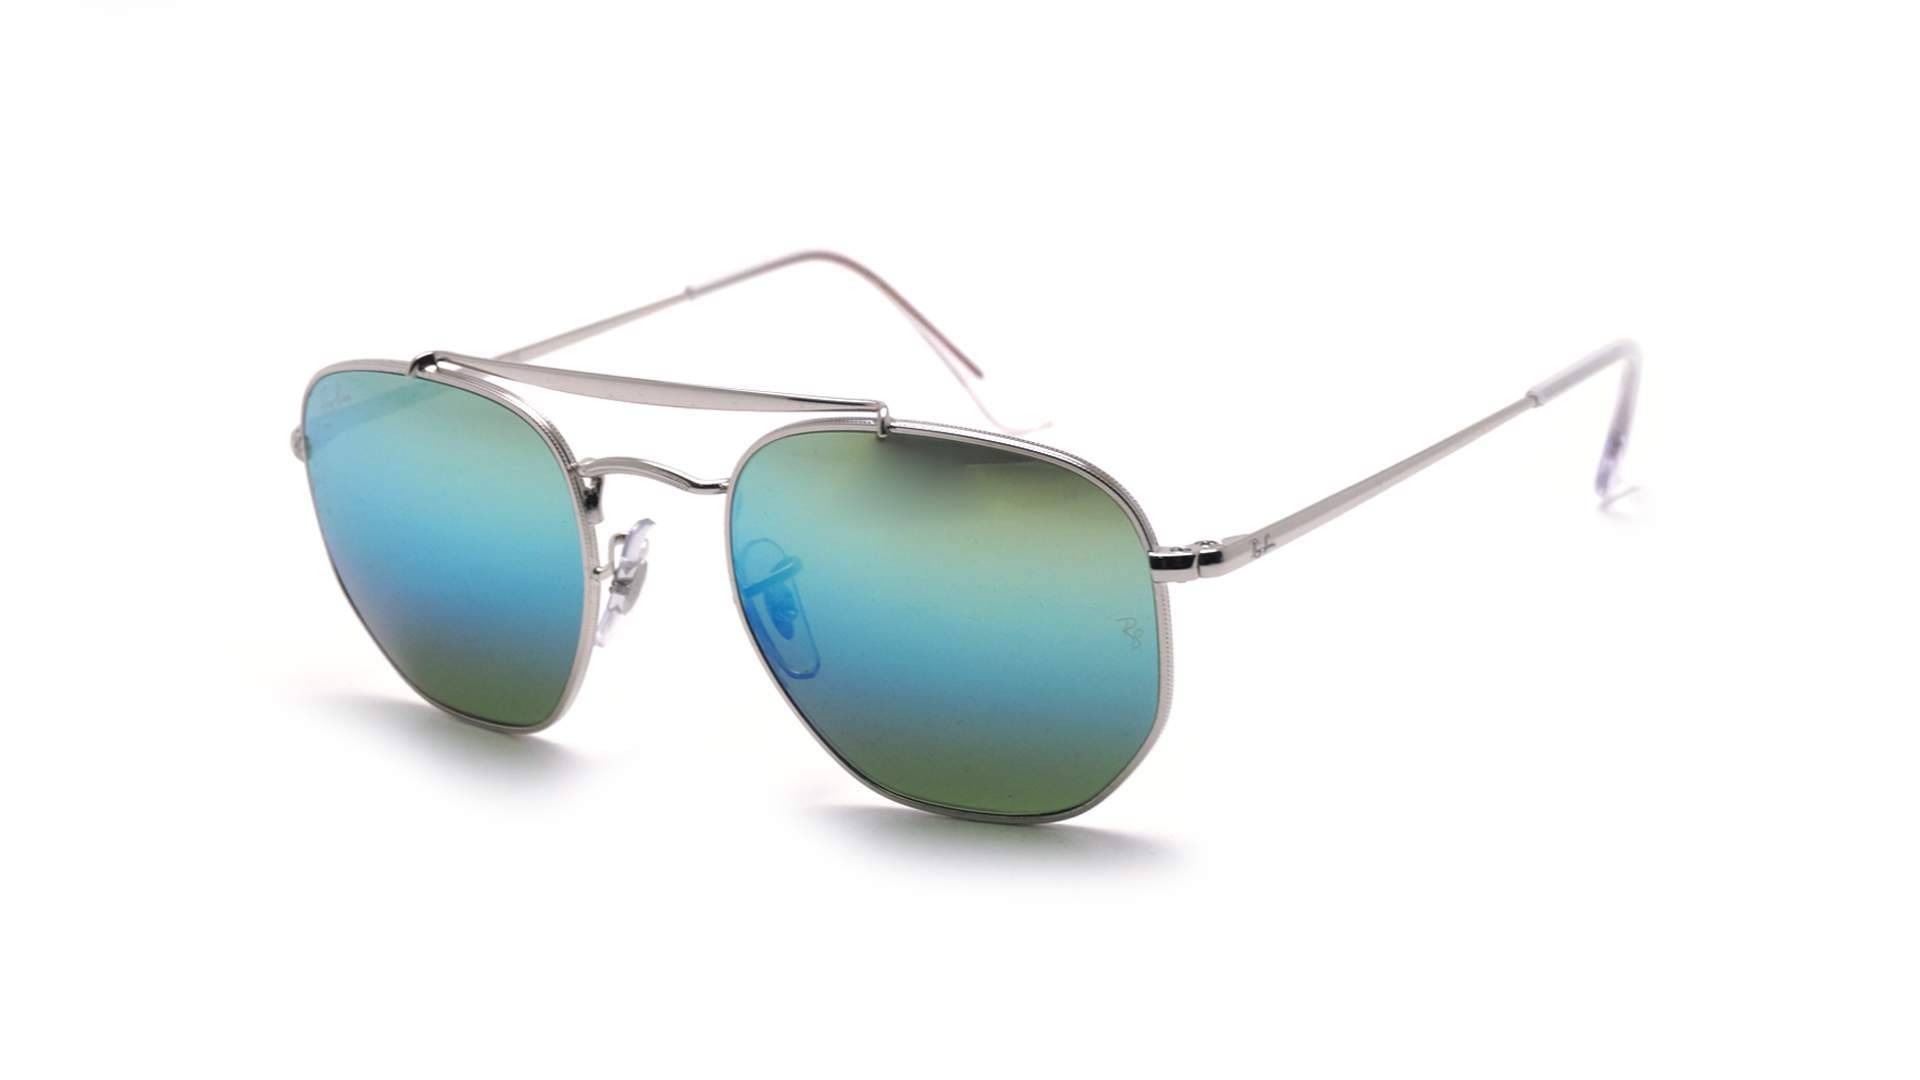 c7be339fd33 Sunglasses Ray-Ban Marshal Silver RB3648 003 I2 54-21 Large Gradient Mirror